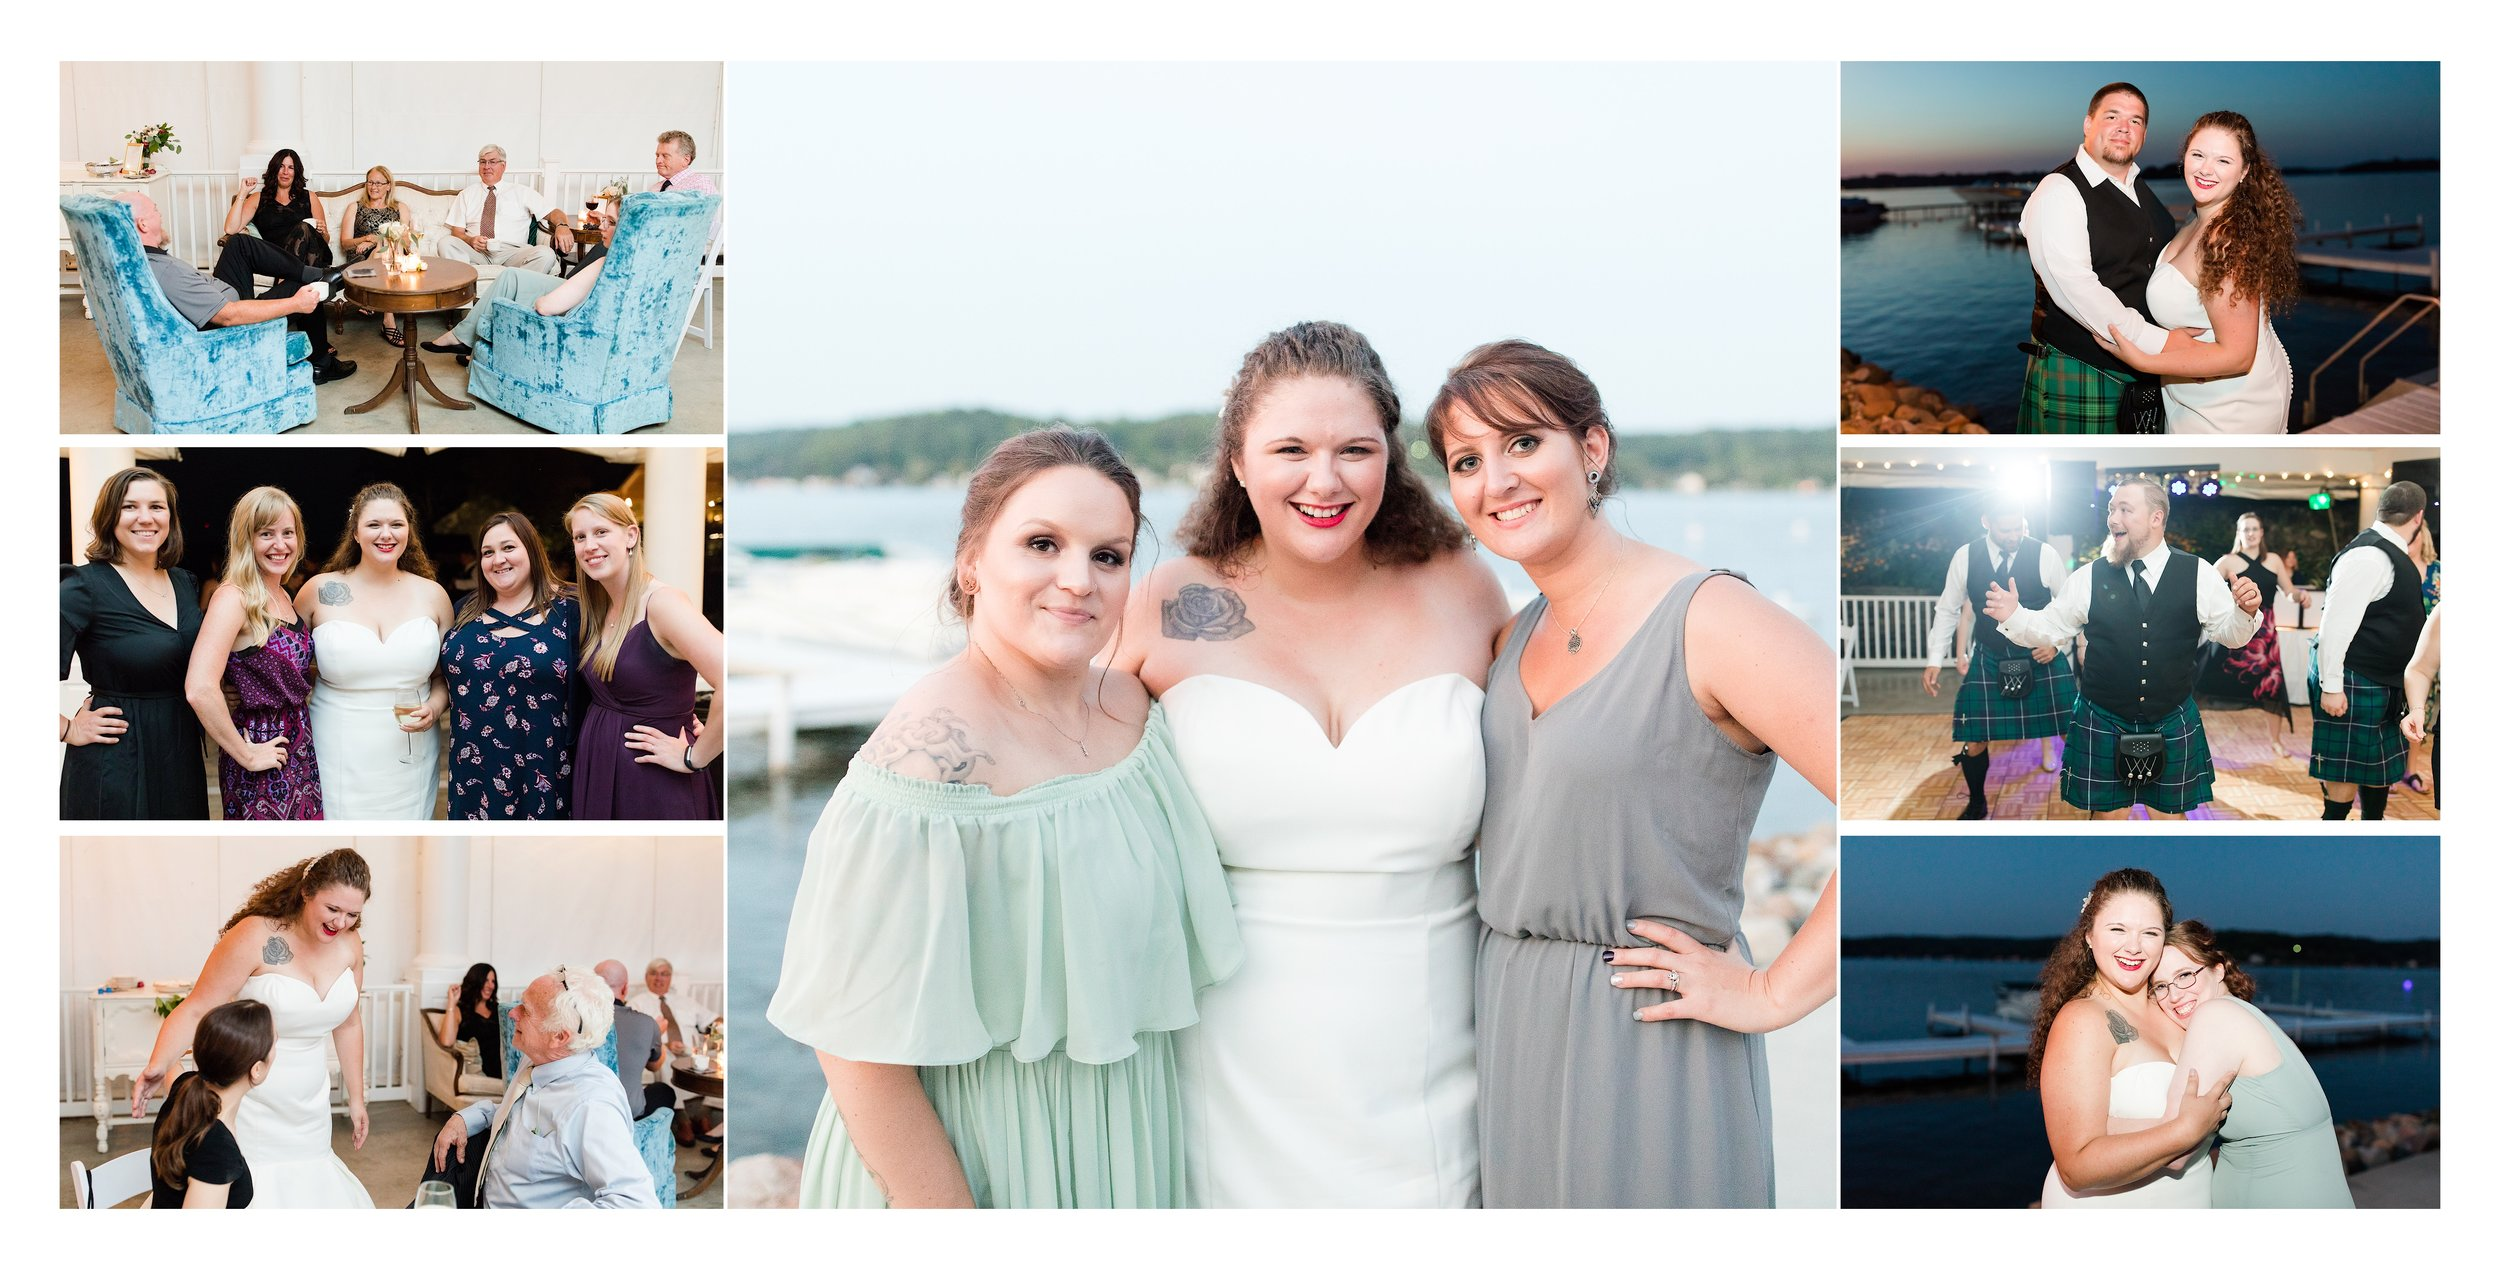 Our_Wedding_Album_12x12_-_30_pages_52.jpg